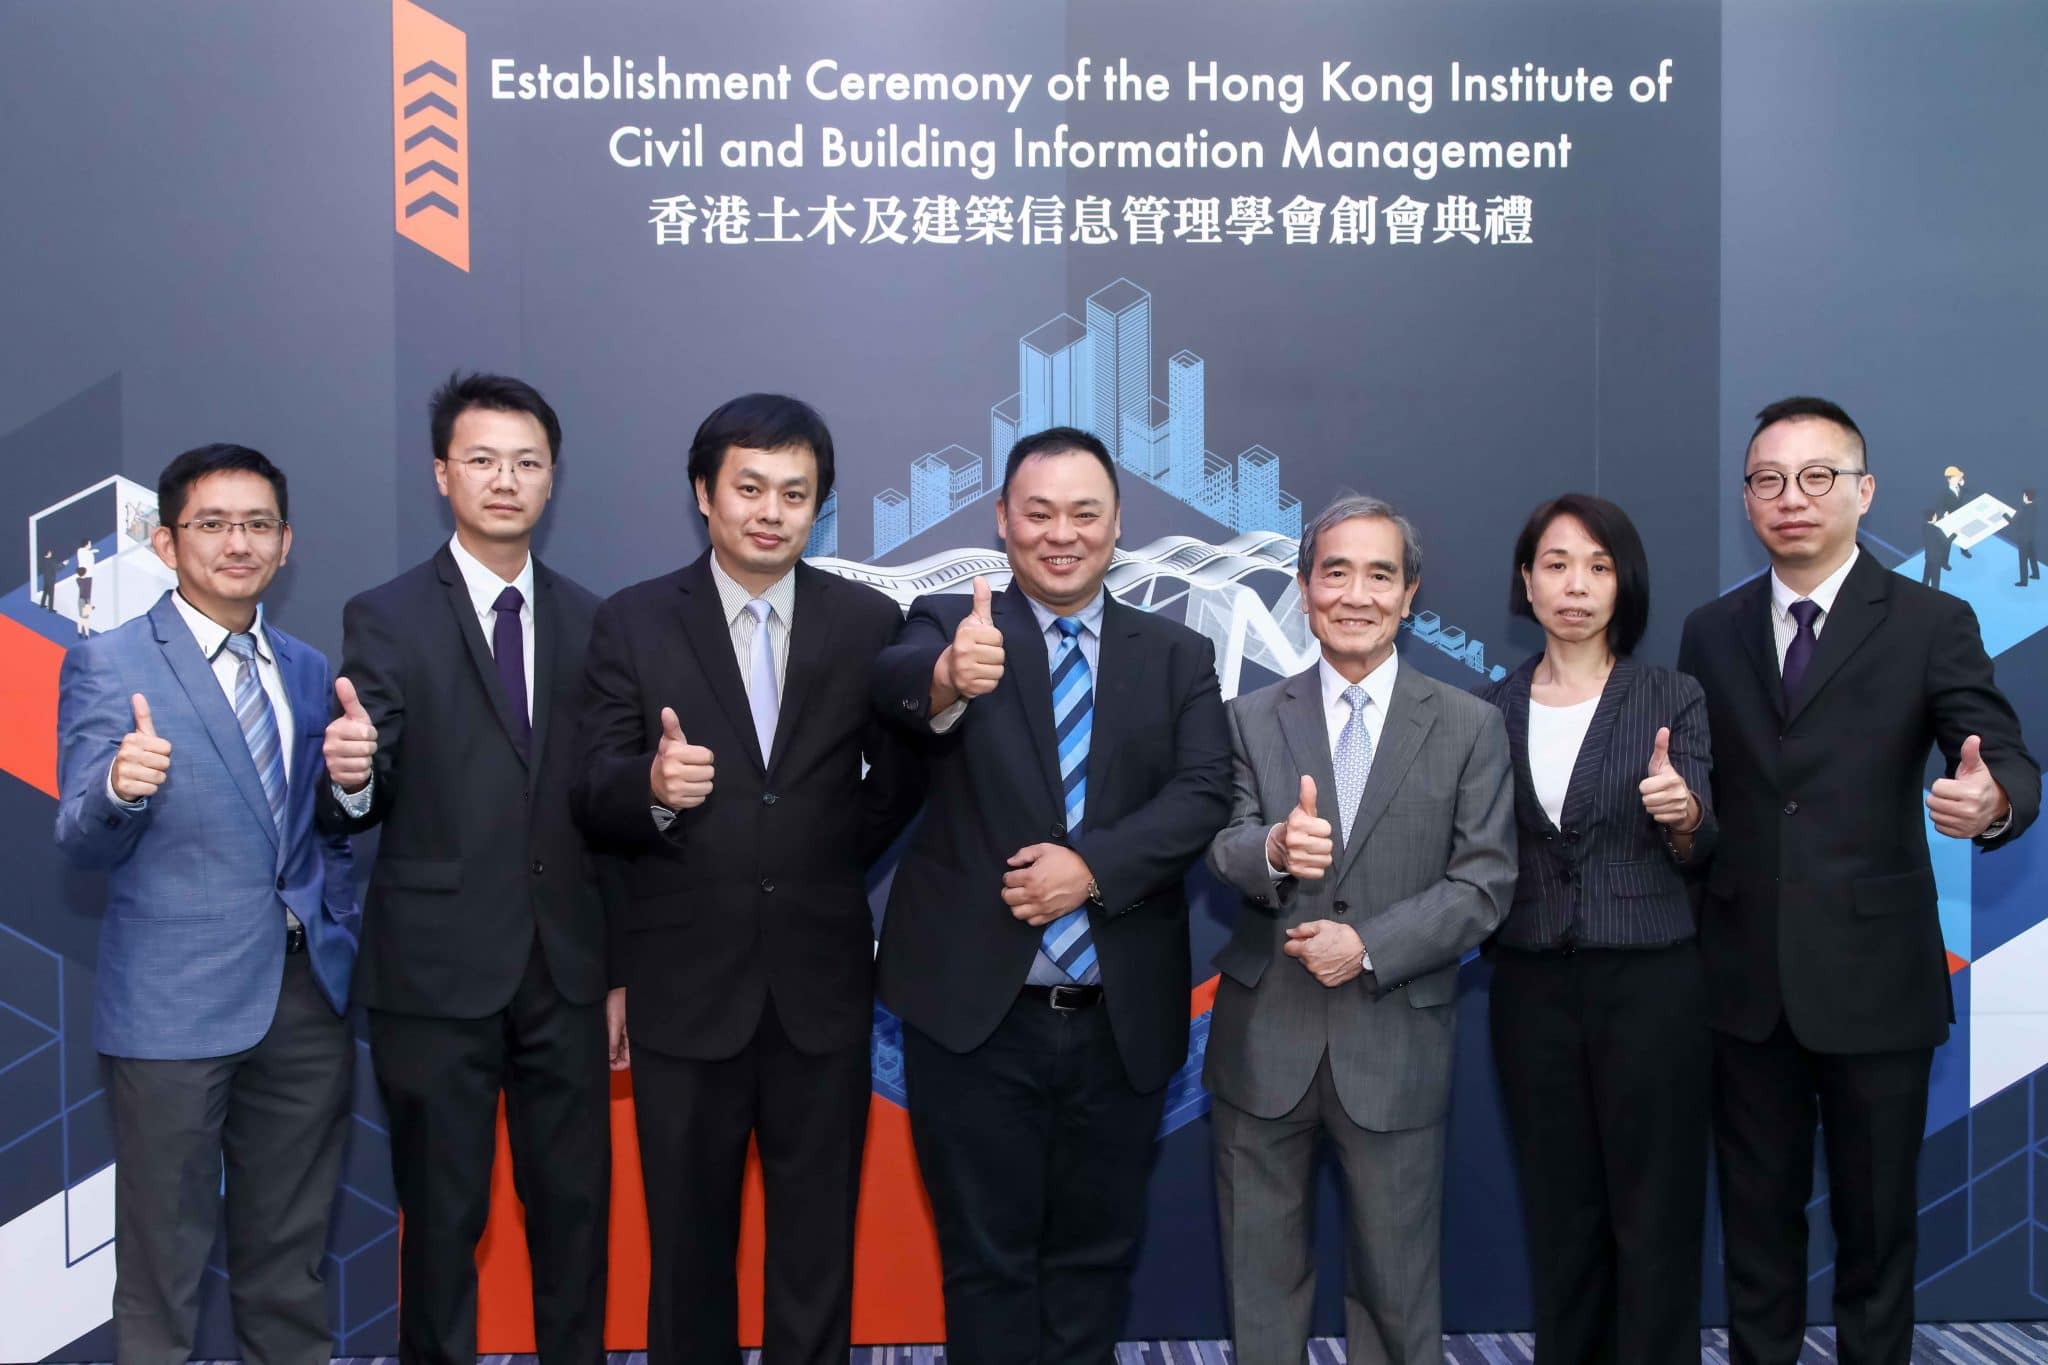 HKICBIM Establishment Ceremony